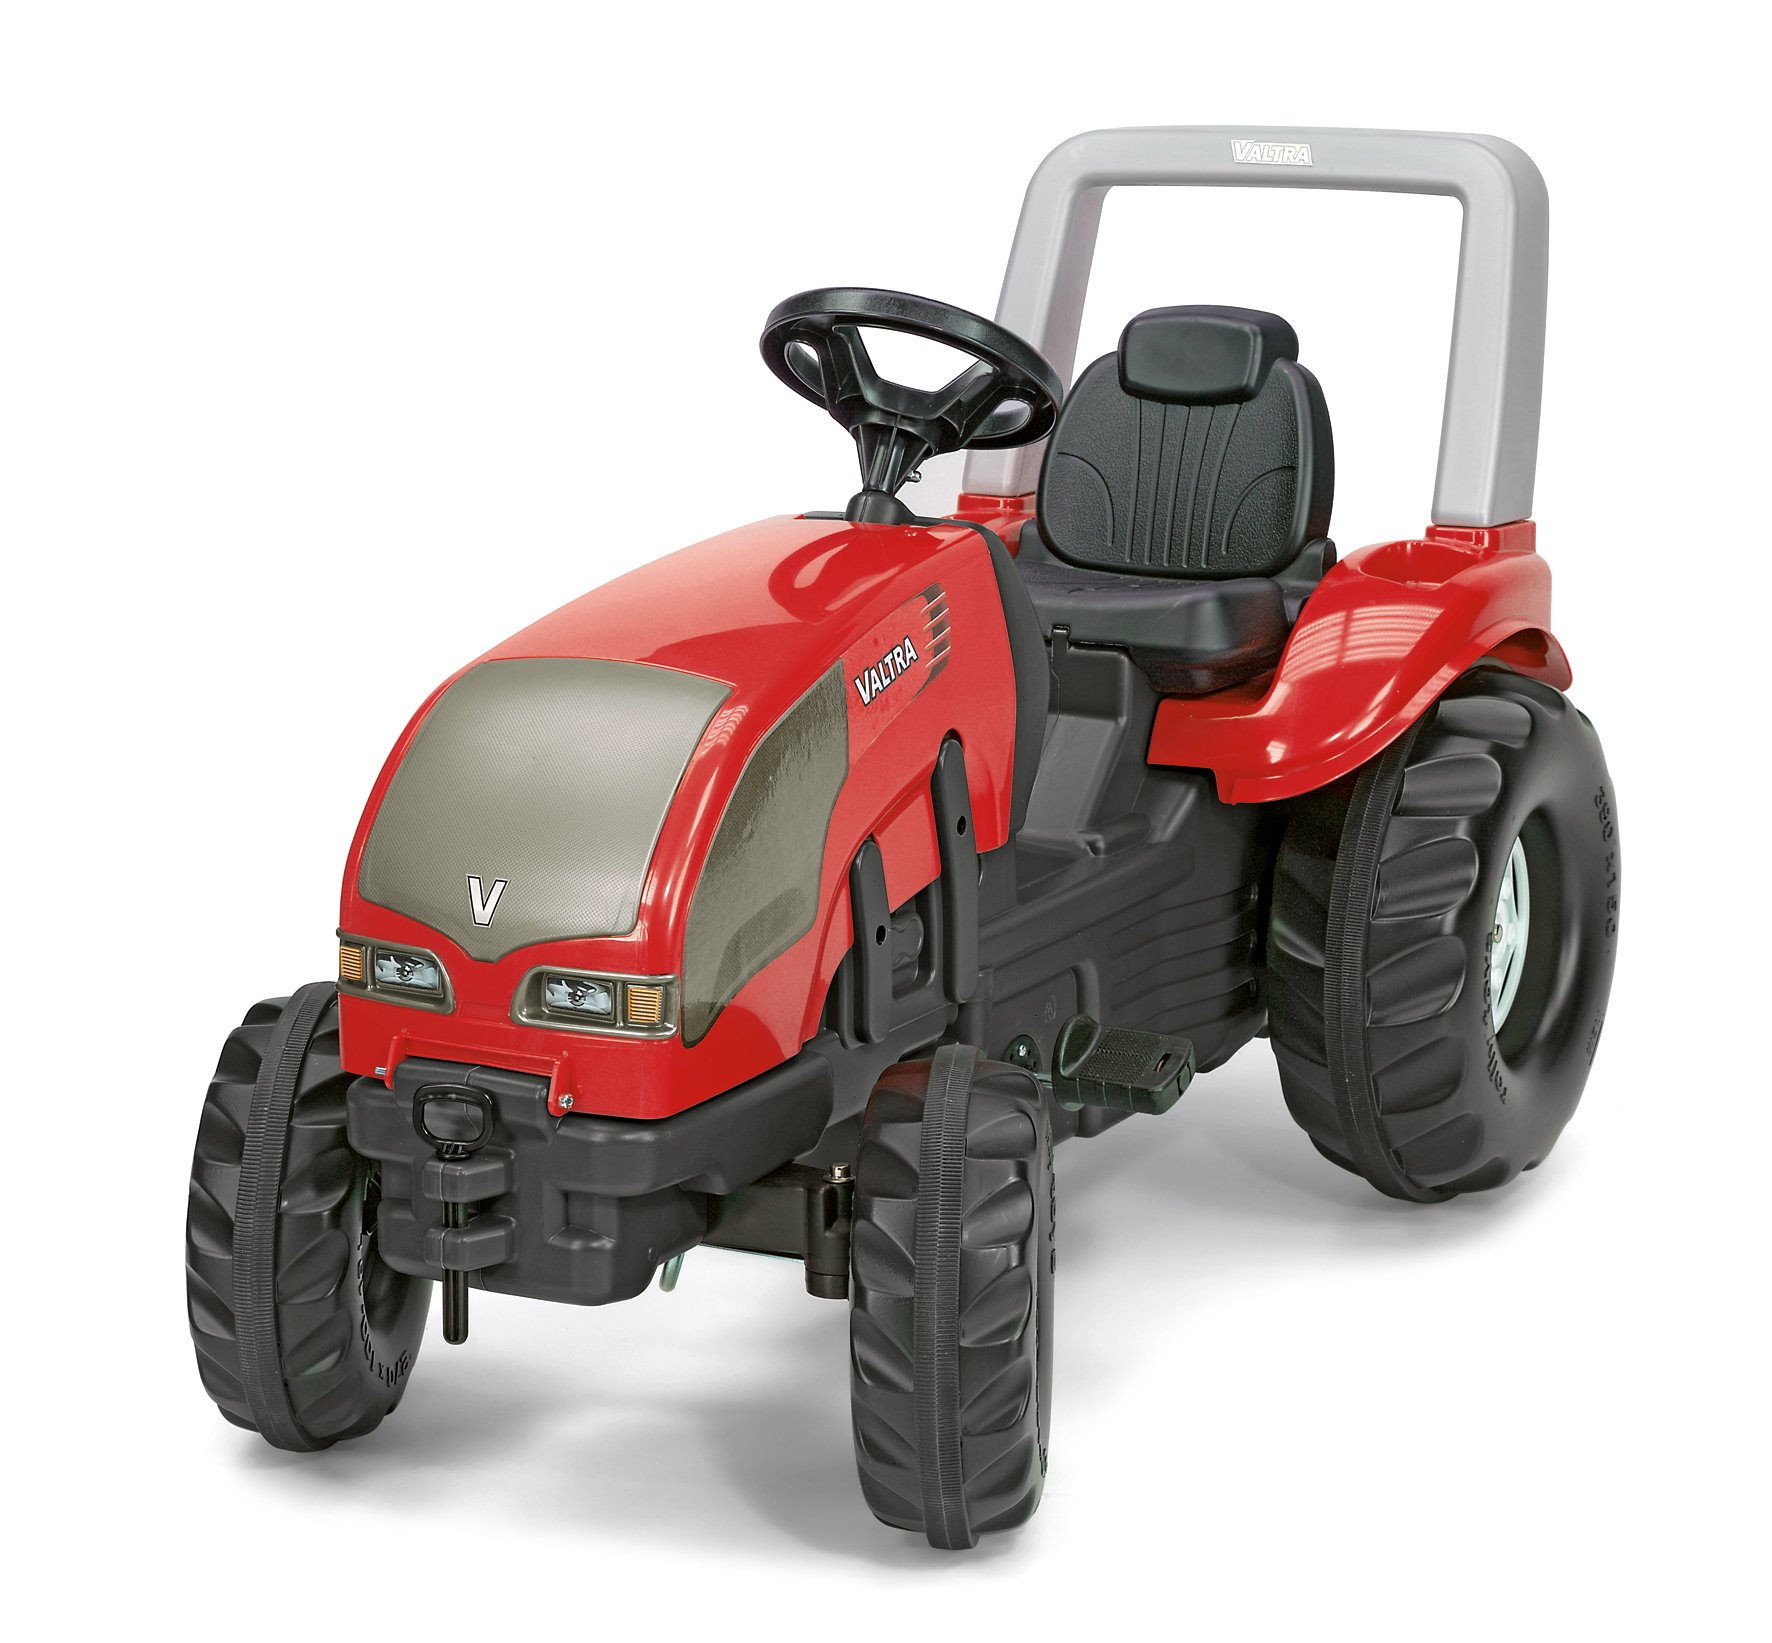 rolly toys Valtra X-Trac Pedal Tractor